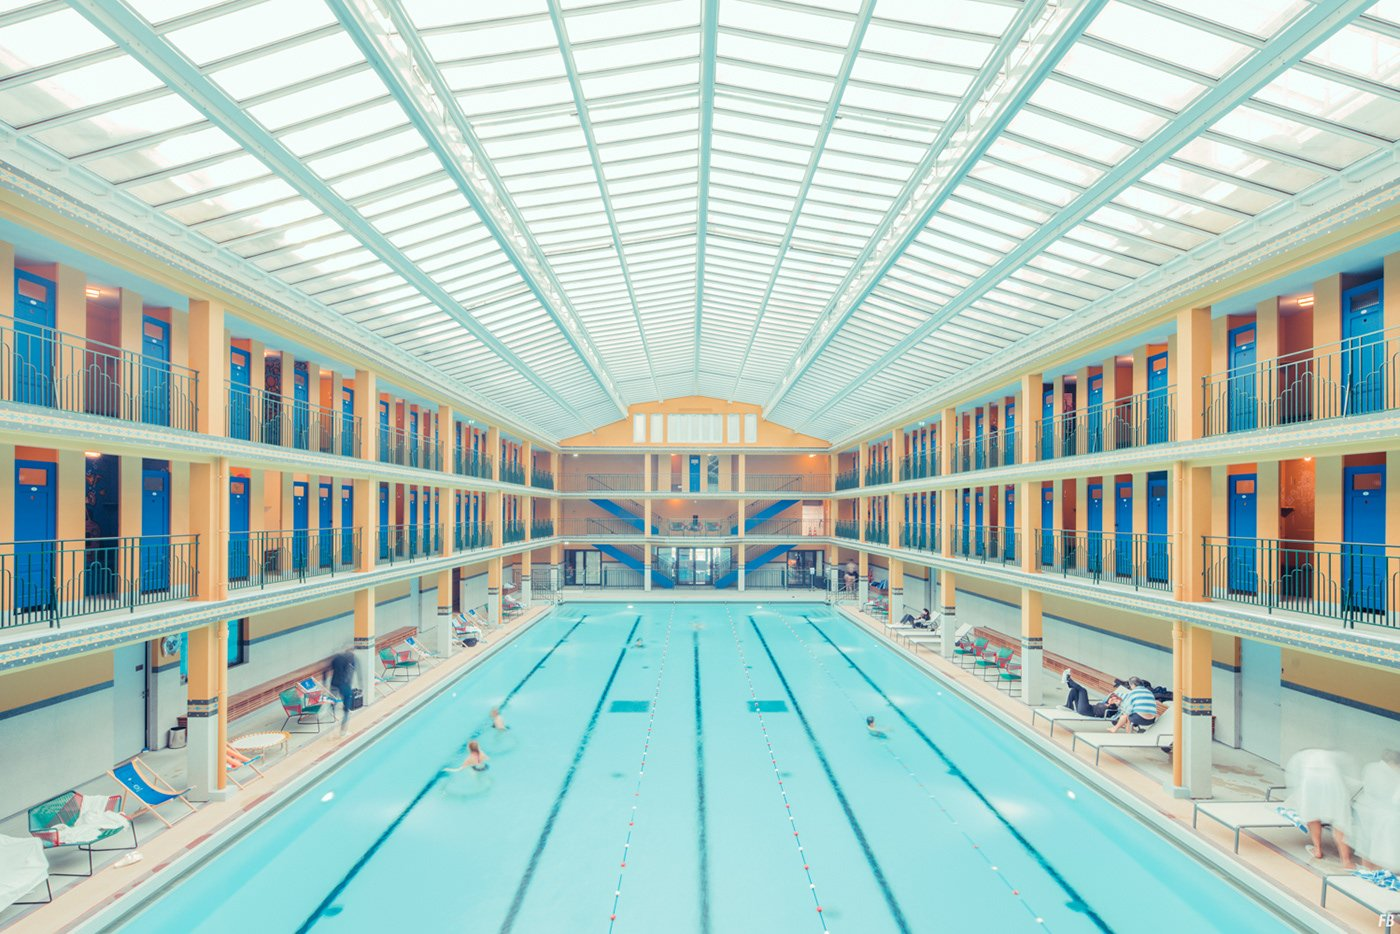 Admirez ces photos sublimes de la piscine molitor for Piscine molitor prix